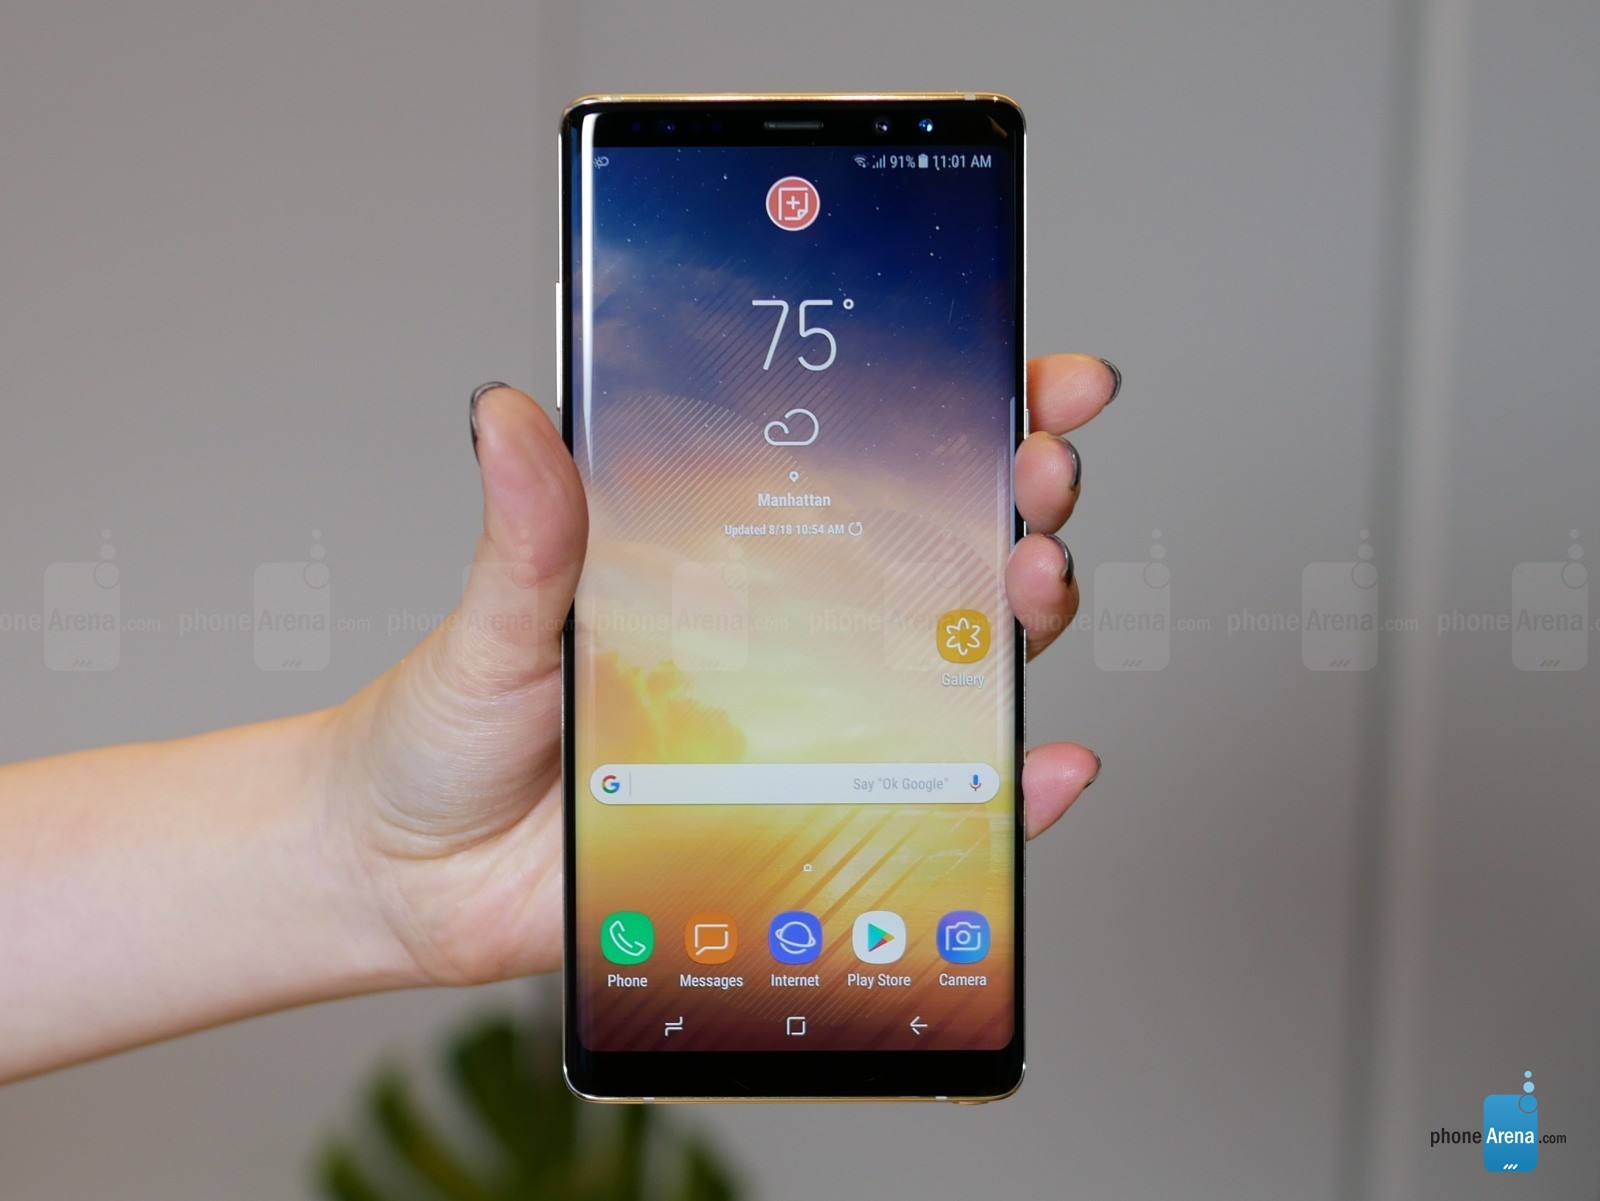 https://i-cdn.phonearena.com/images/articles/298393-image/Galaxy-Note-8-hands-on-specs-price-release-04.jpg